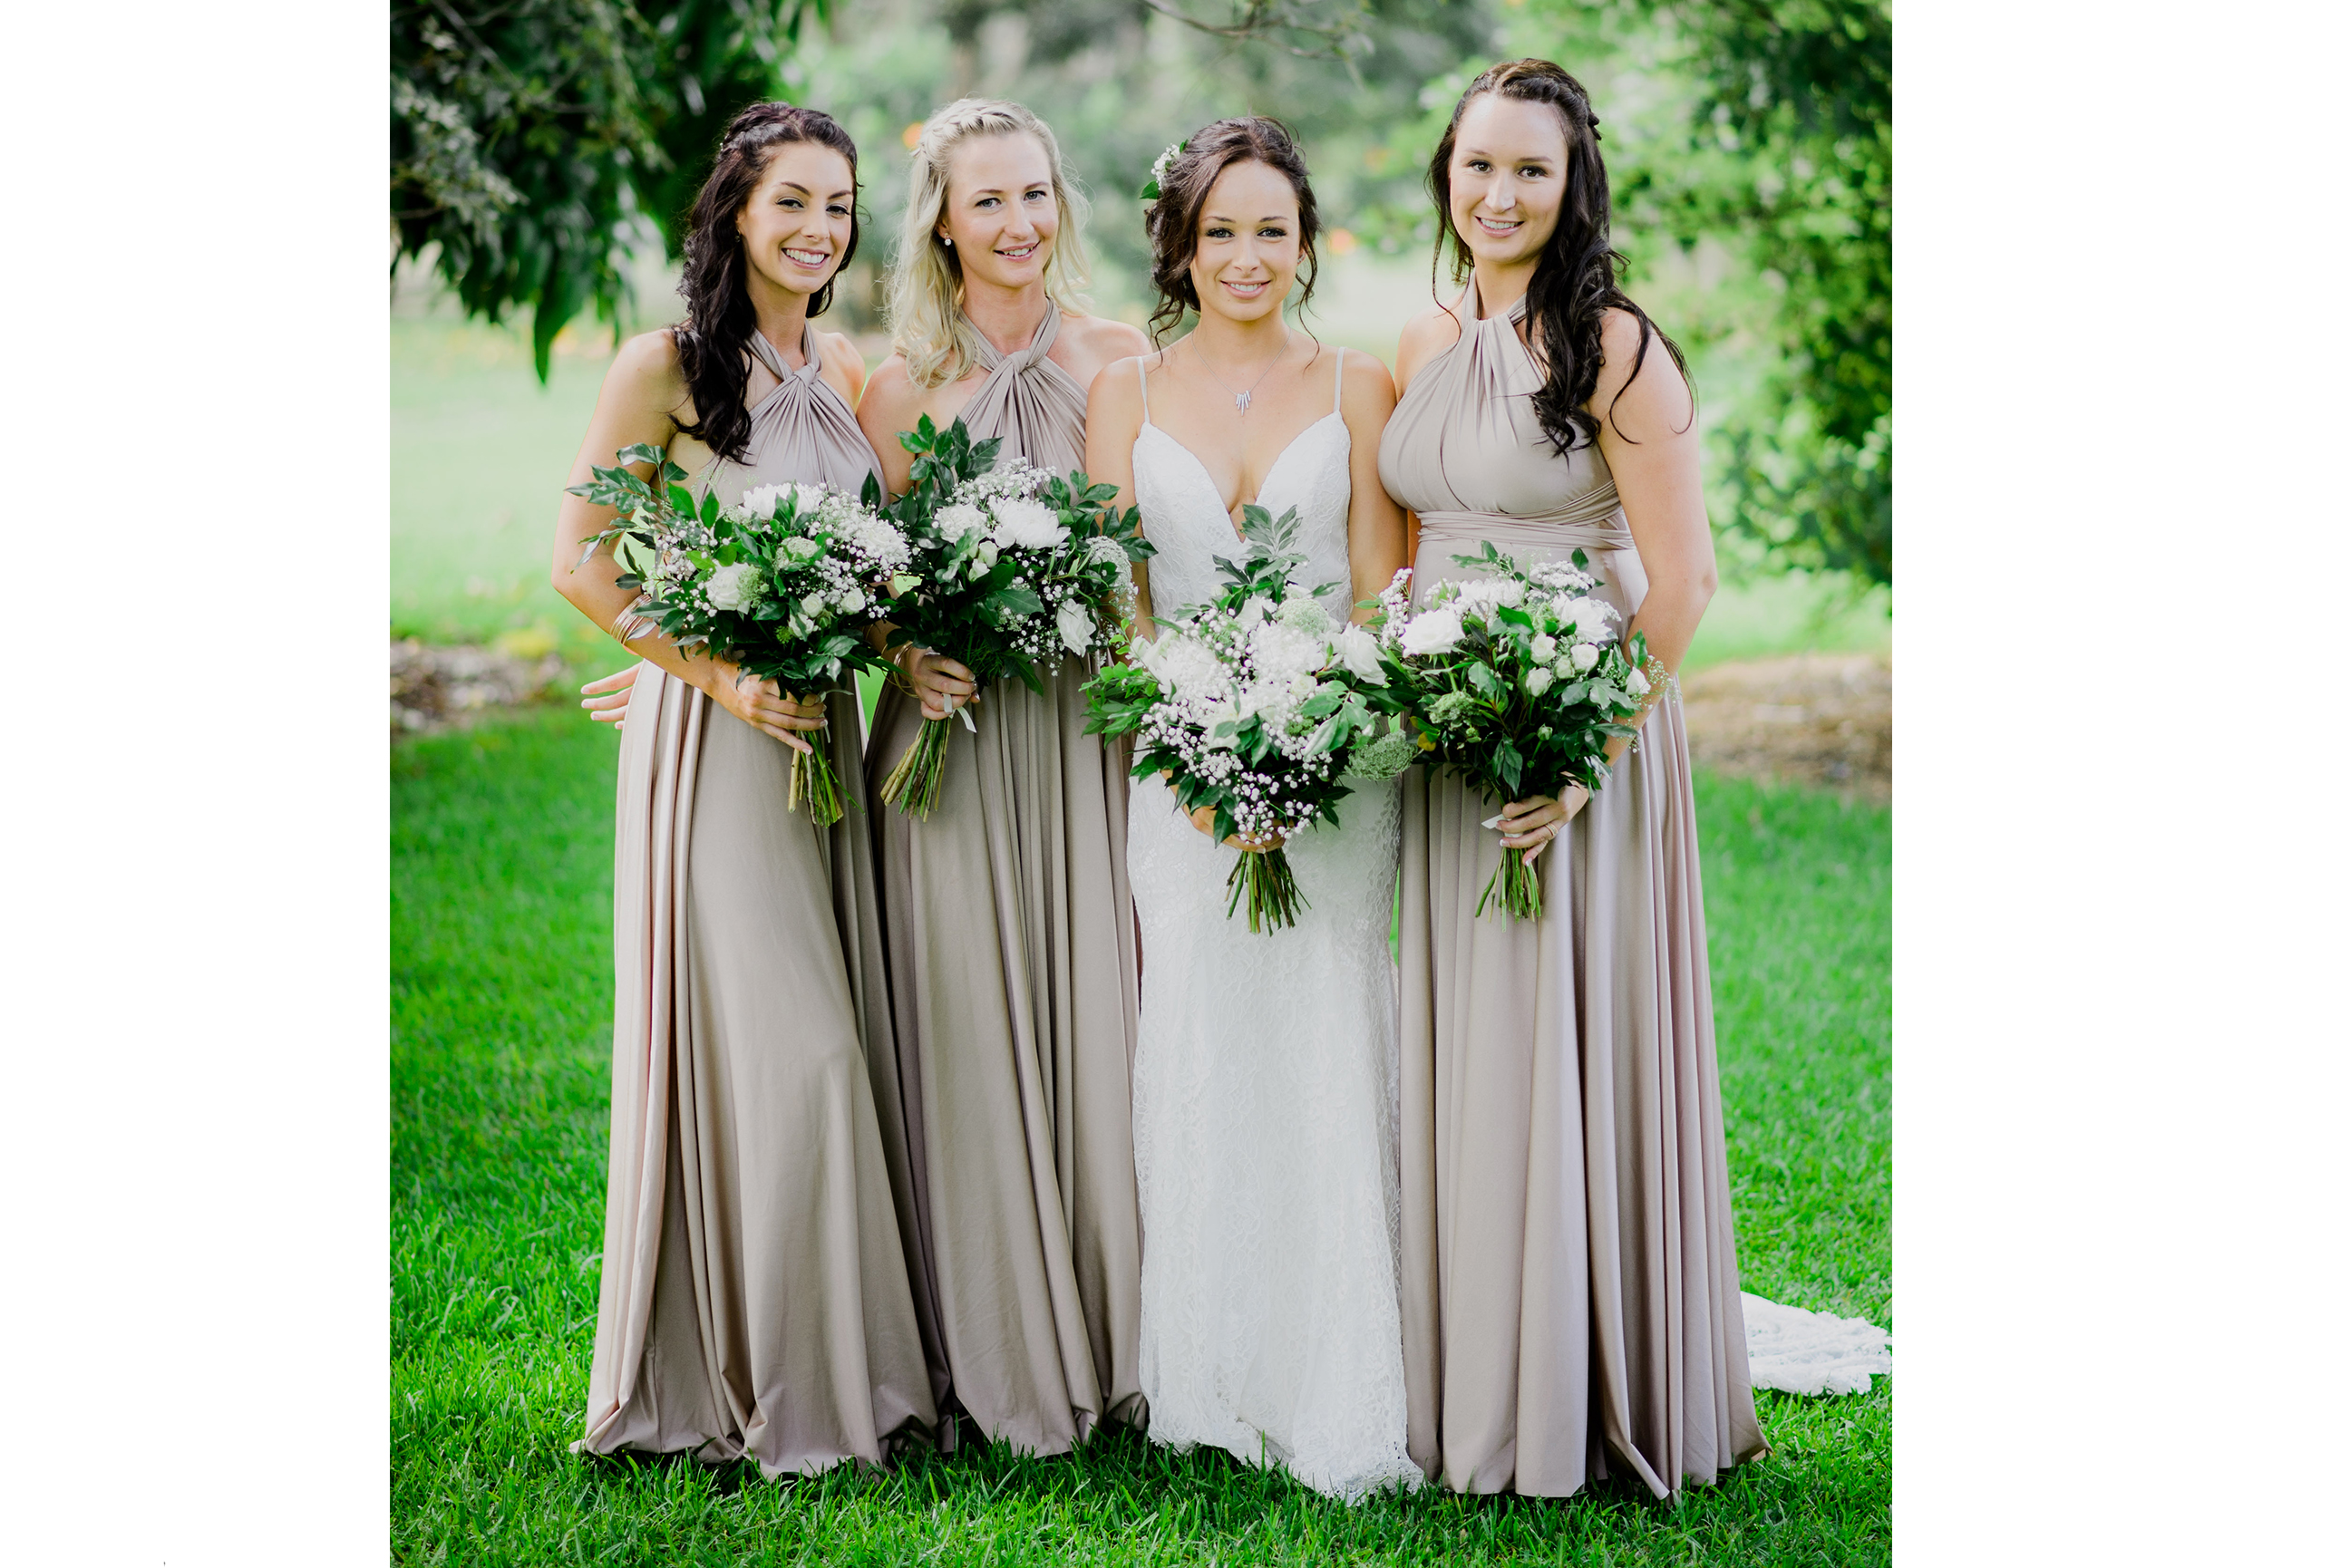 Goddess by nature australian made bridesmaids and wedding dresses so helpful throughout the entire process of choosing my bridesmaids dresses all the way through to post wedding their support assistance and beautiful ombrellifo Choice Image